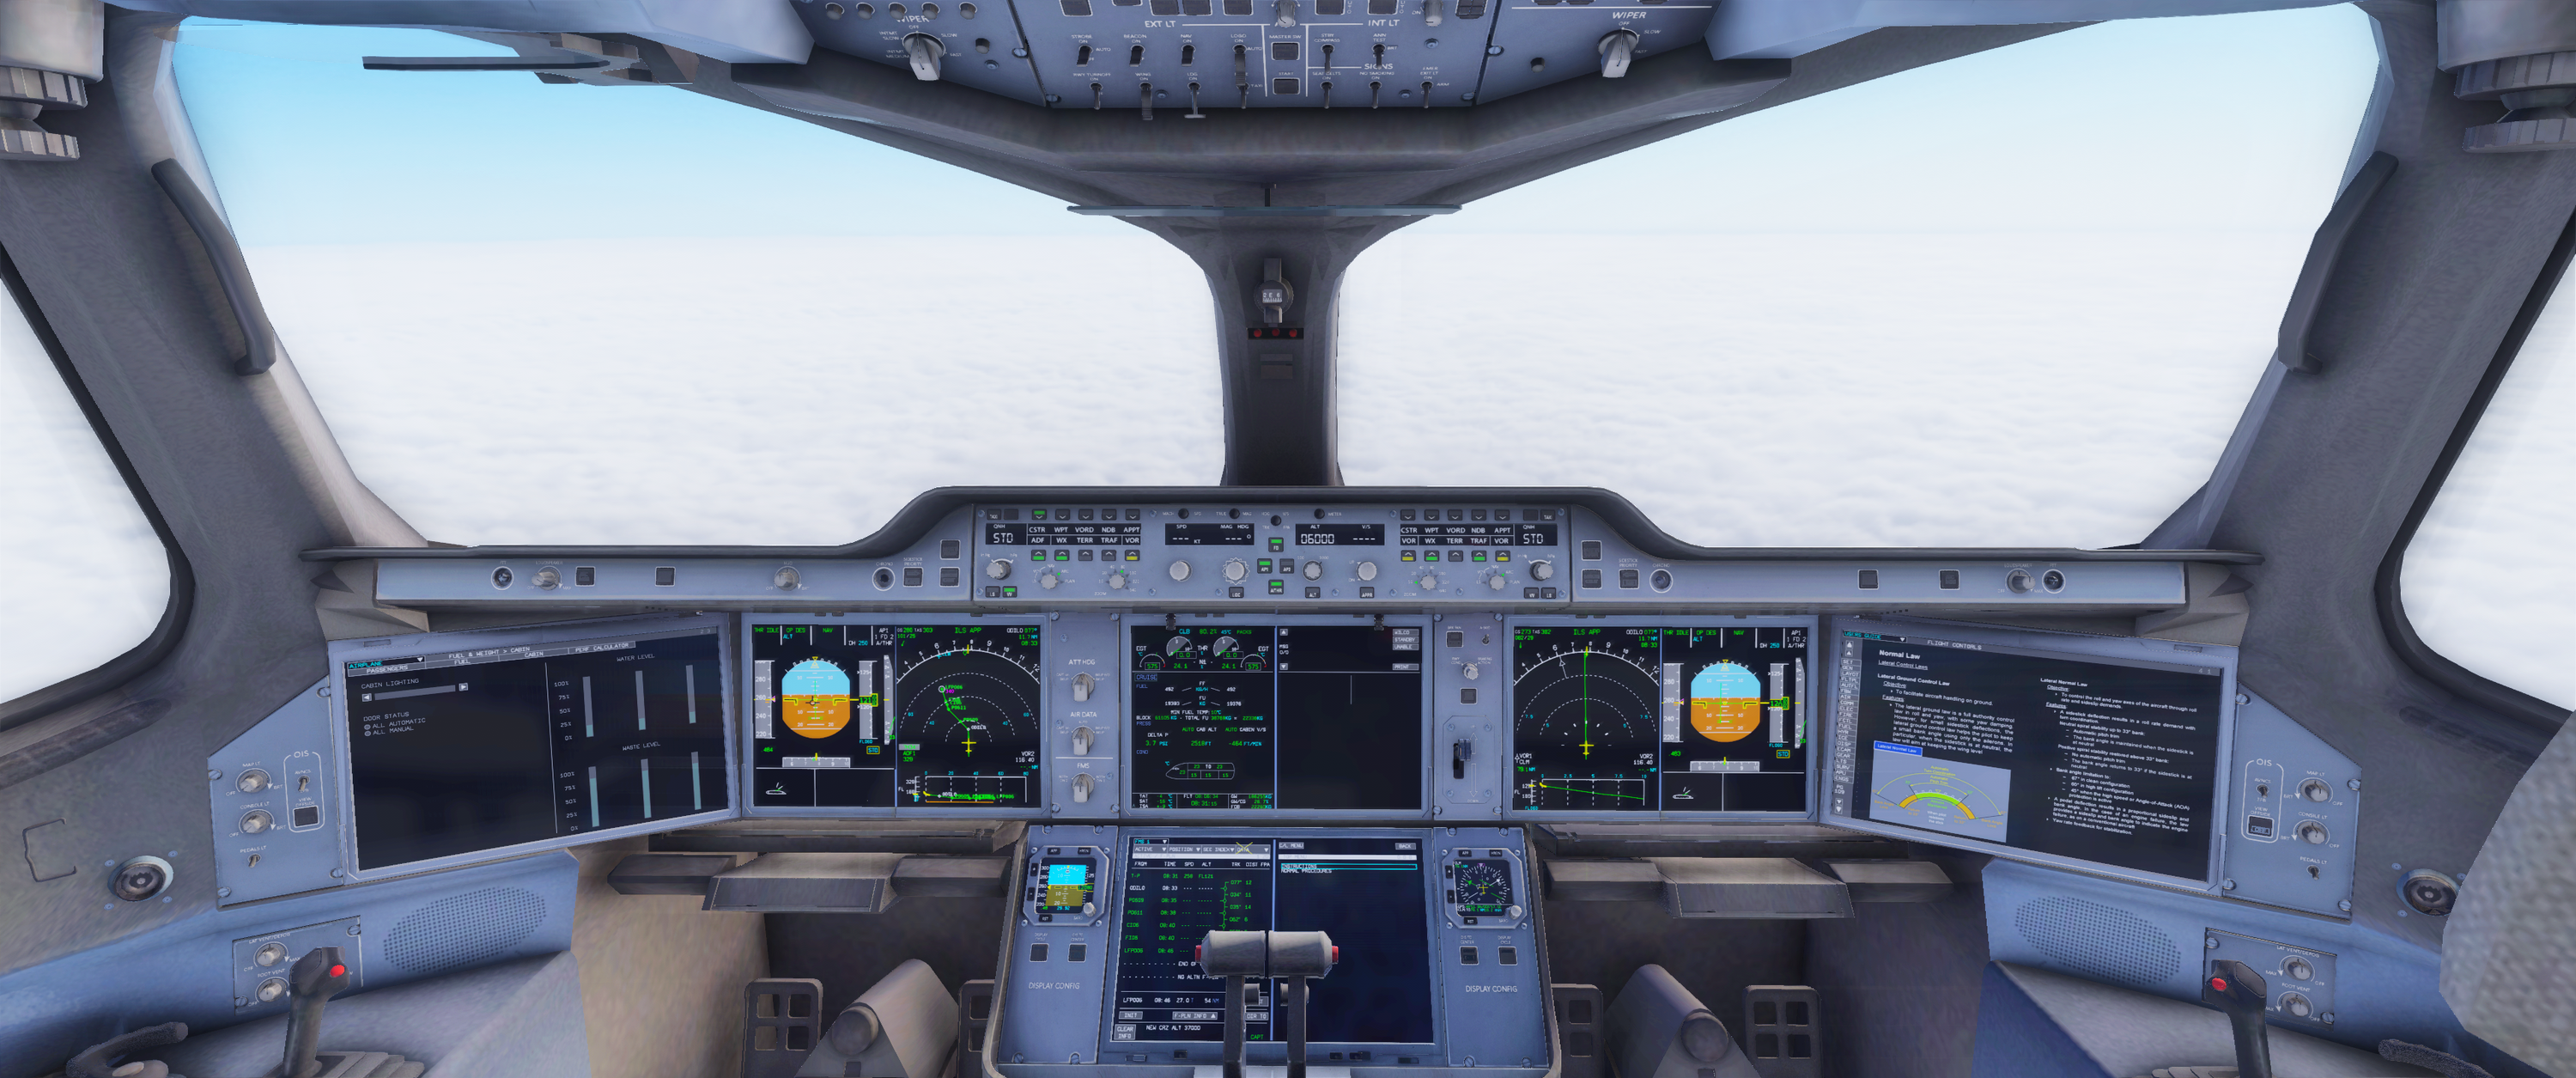 X-Plane Screenshot 2020.03.22 - 09.31.15.78.png